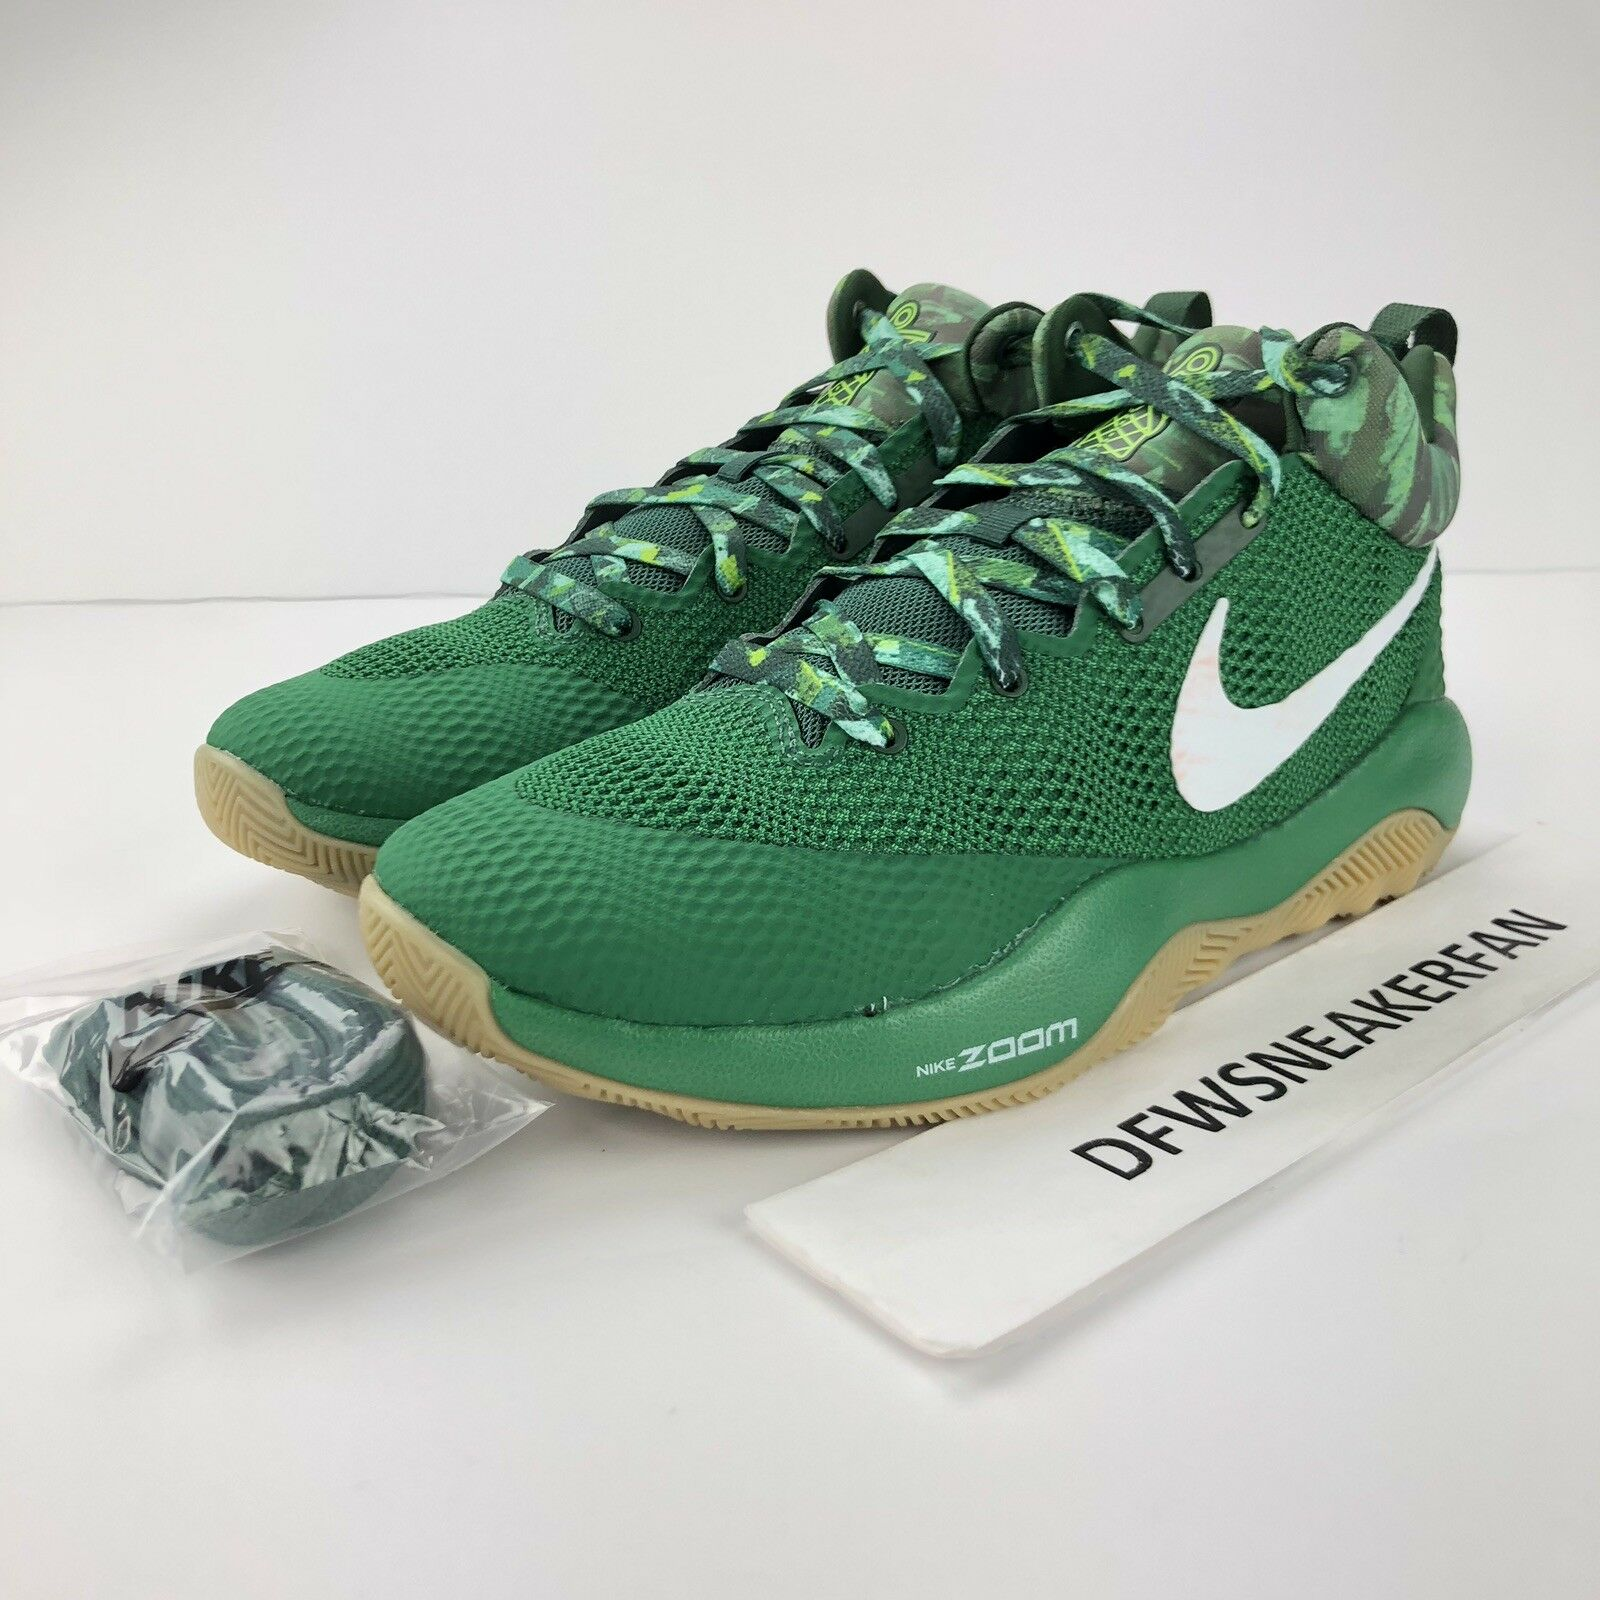 Nike Zoom HyperRev LMTD Basketball shoes Sz 9.5 Green Gum  906874 300 New